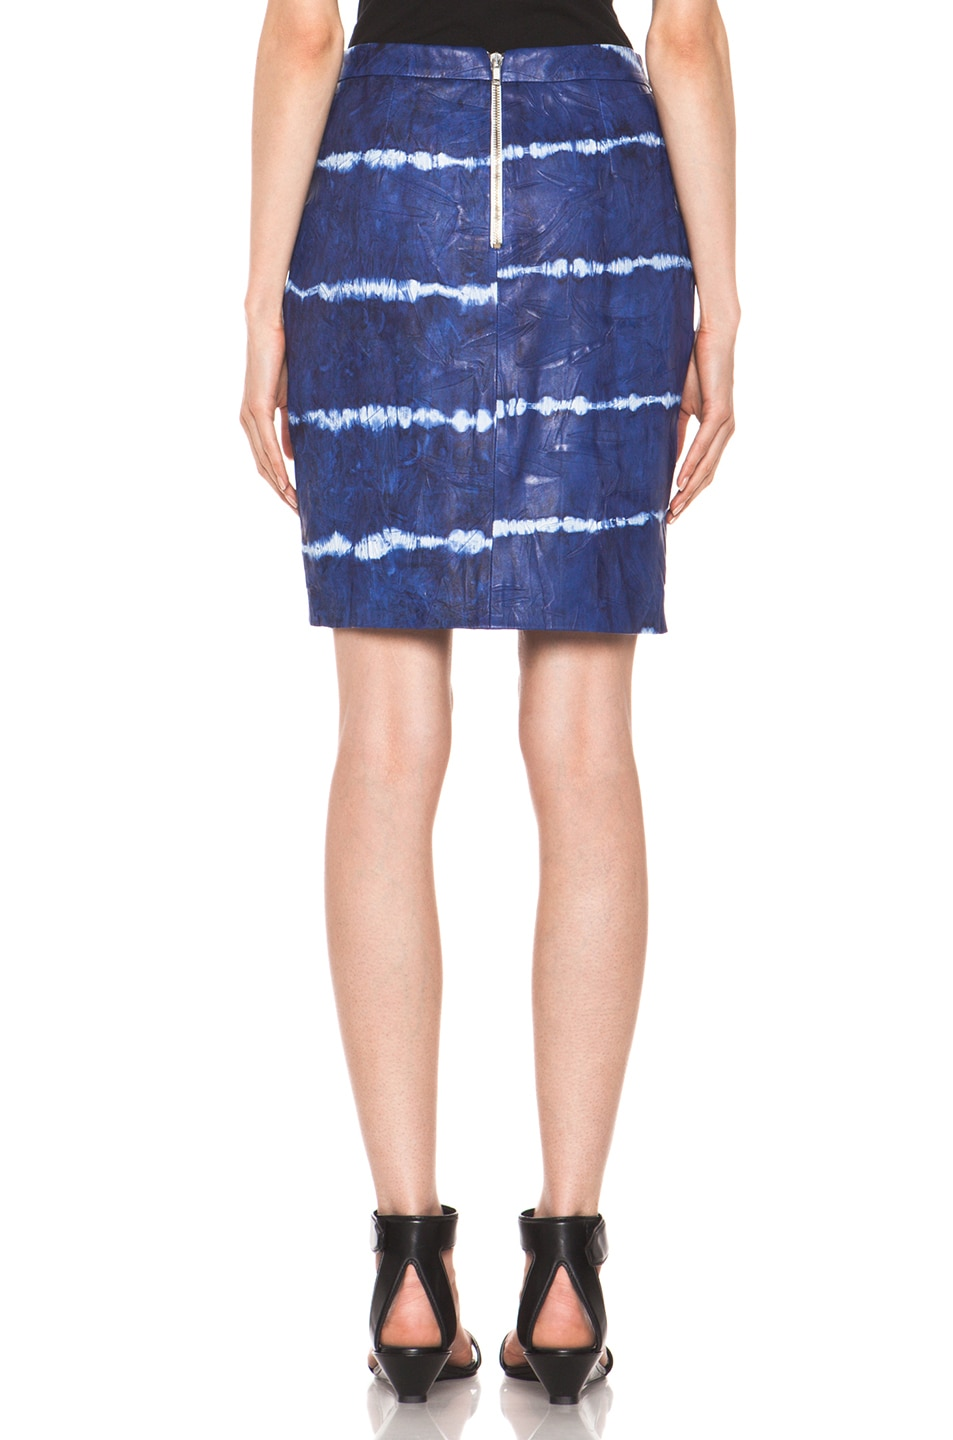 Image 4 of Boy. by Band of Outsiders Leather Pencil Skirt in Blue Tye Dye